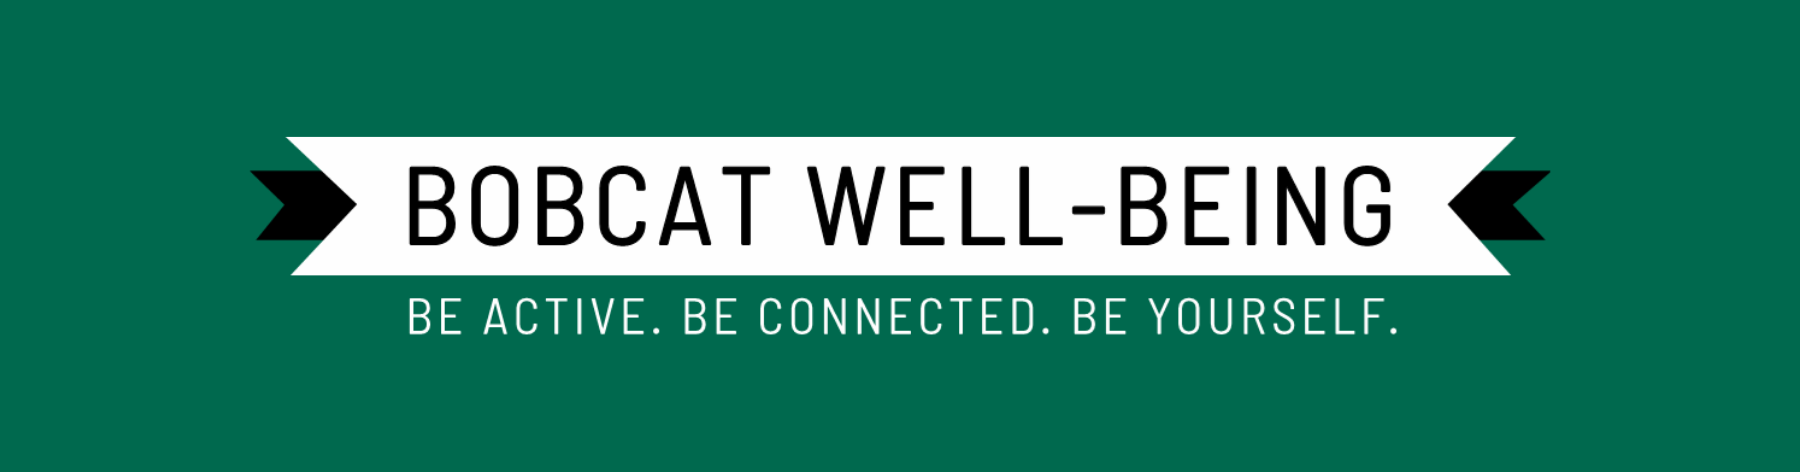 Bobcat WellBeing